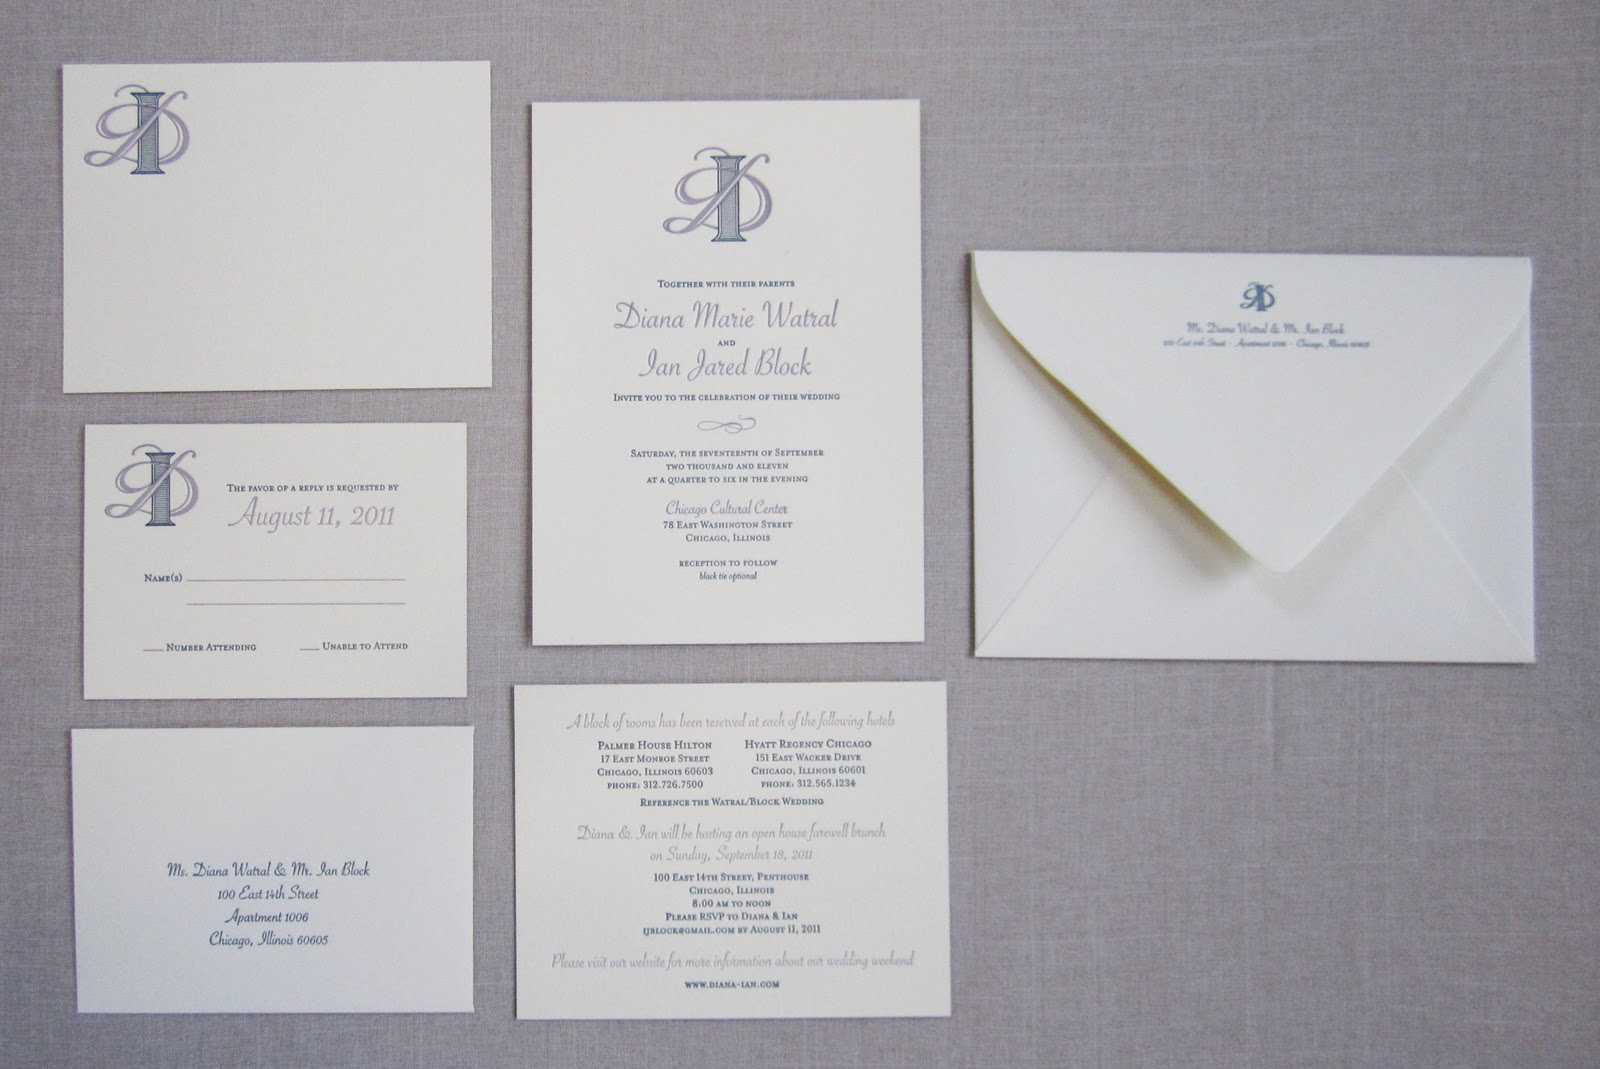 Wedding Invitations With Response Cards And Envelopes: Tailored: New Designs: Diana & Ian's Wedding Stationery